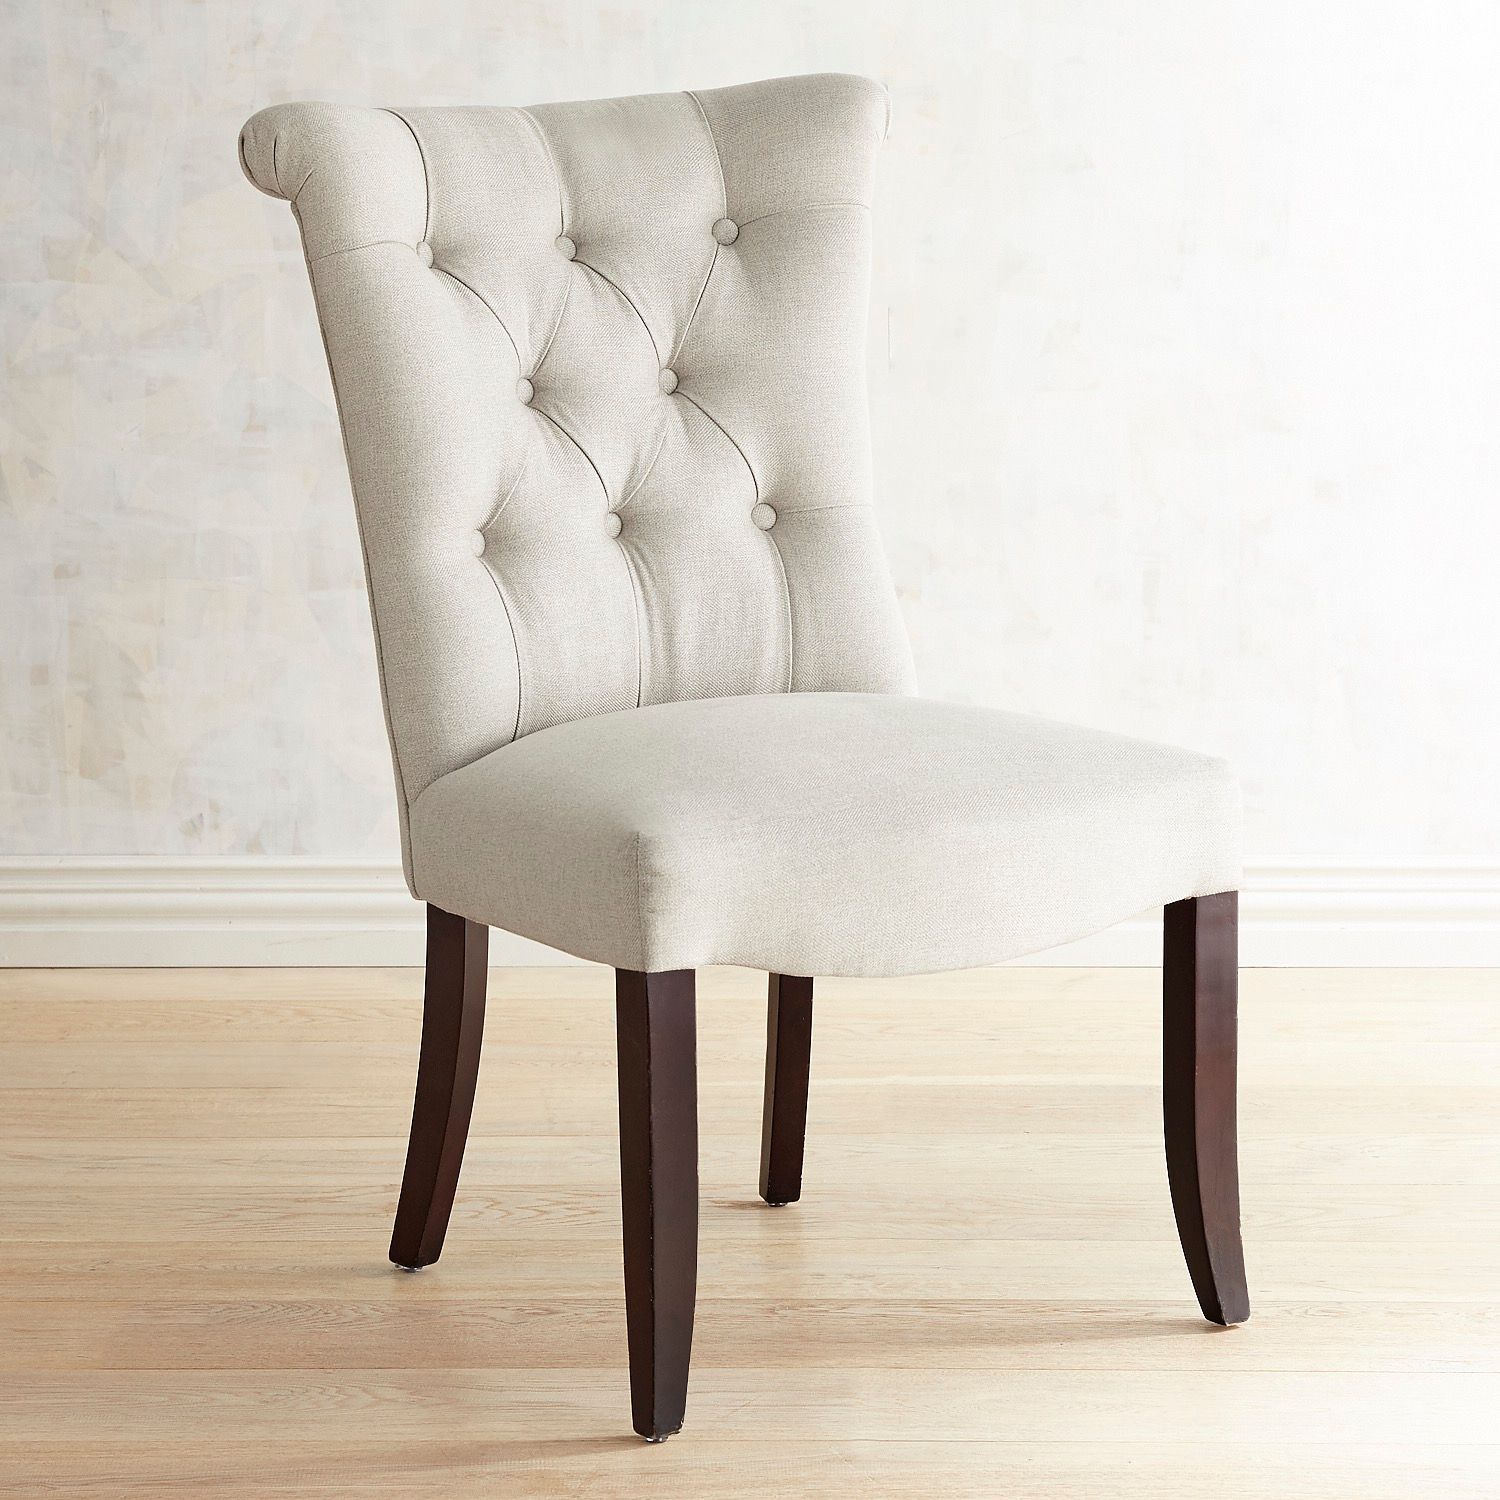 Colette Flax Dining Chair with Espresso Legs